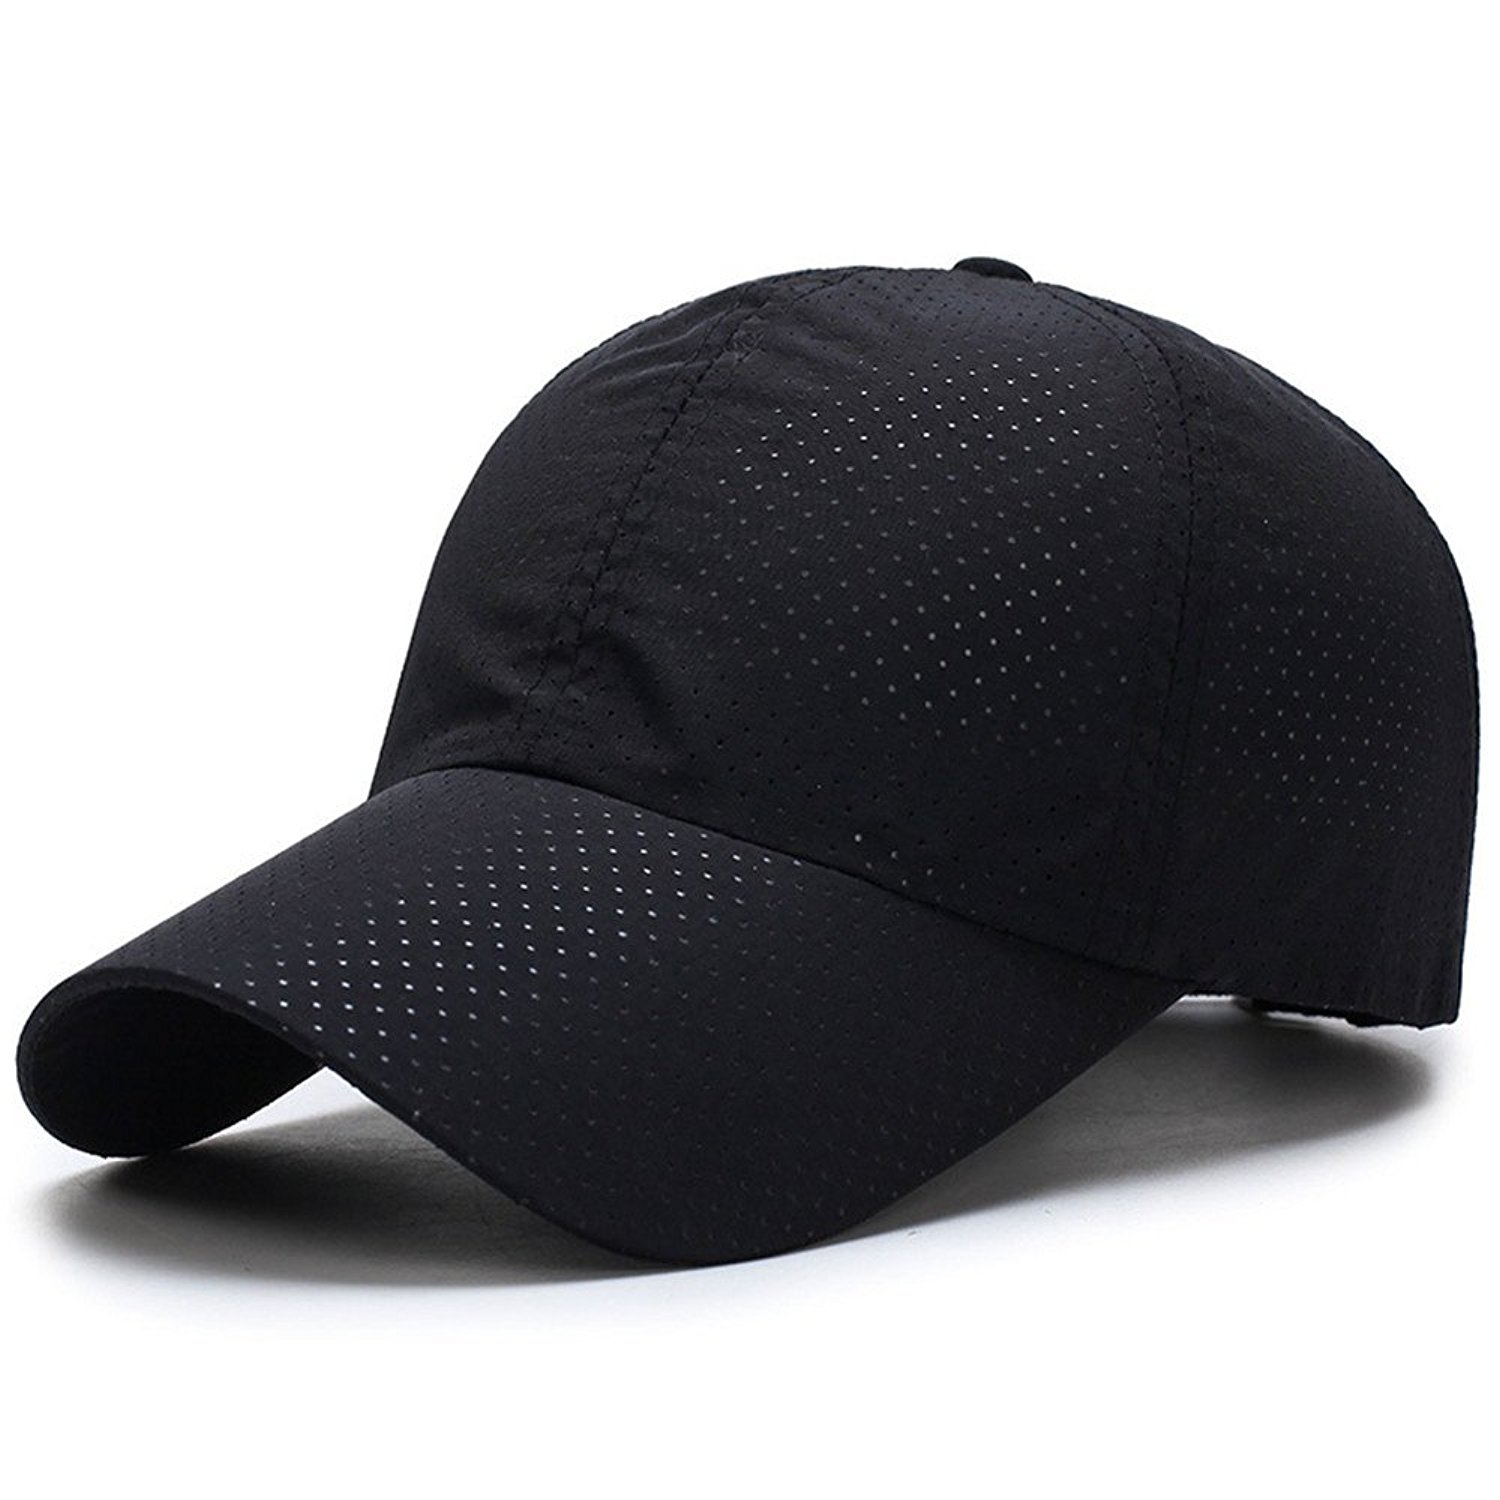 9dc14cd6c559c Get Quotations · FUNY Summer Baseball Cap Quick Dry Cooling Sun Hats Sports  Caps Mesh Hat for Golf Cycling